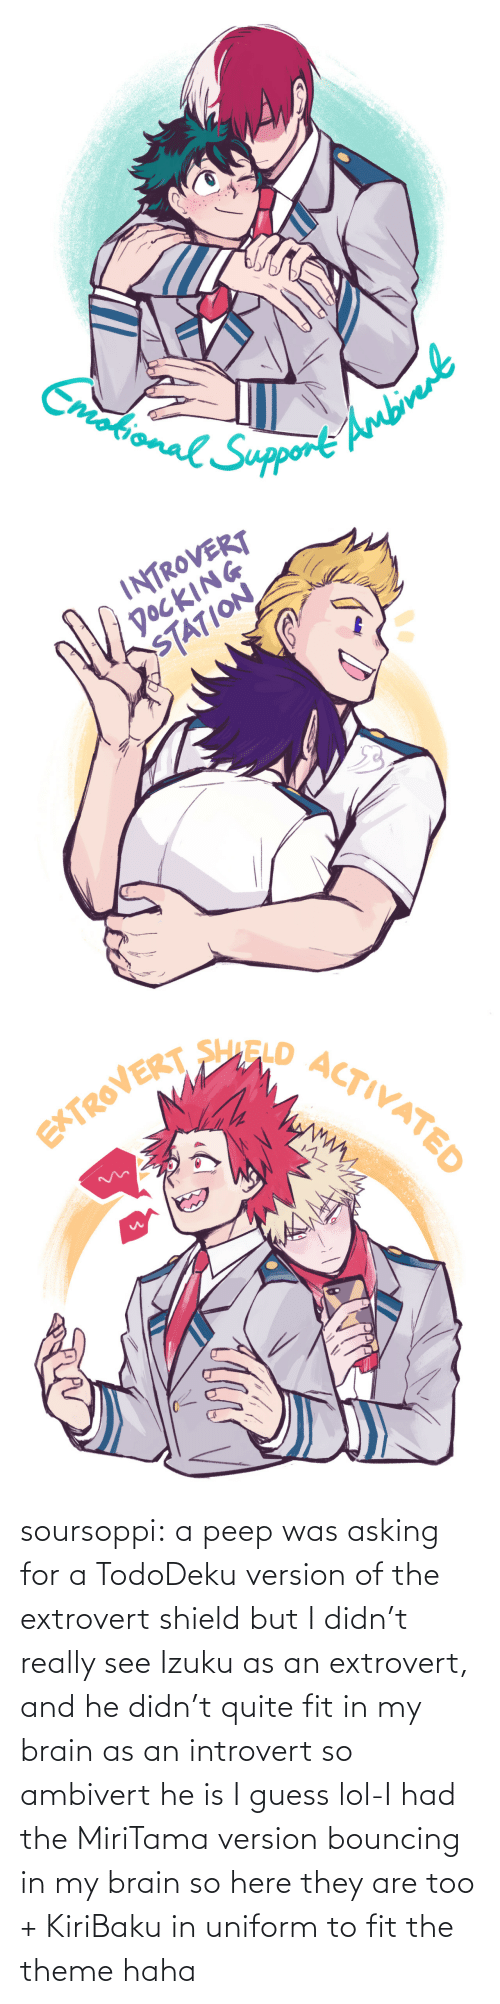 my brain: soursoppi:  a peep was asking for a TodoDeku version of the extrovert shield but I didn't really see Izuku as an extrovert, and he didn't quite fit in my brain as an introvert so ambivert he is I guess lol-I had the MiriTama version bouncing in my brain so here they are too + KiriBaku in uniform to fit the theme haha